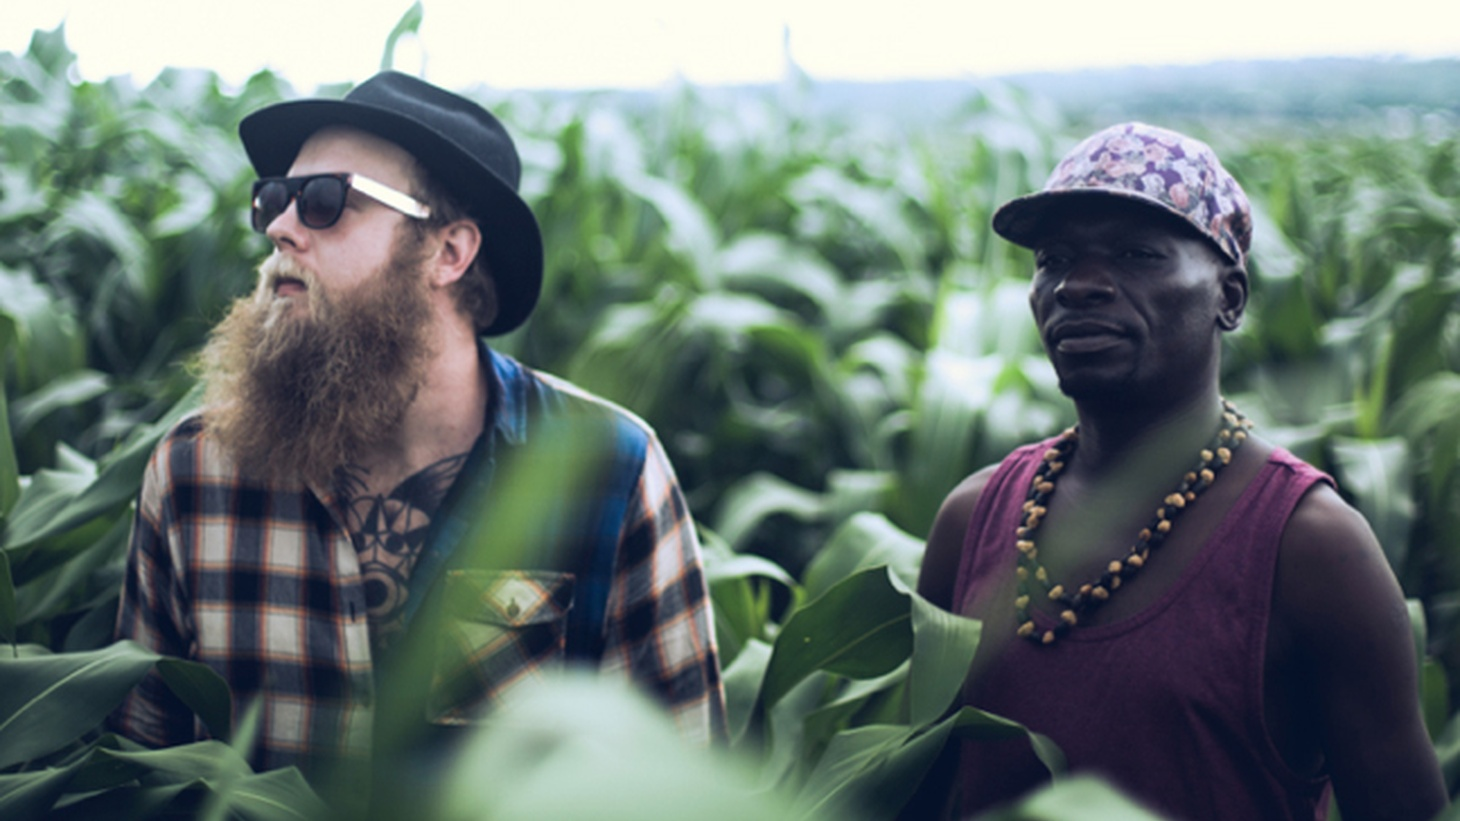 Swedish-Malawian duo The Very Best have found global success with their jubilant sound, finding their way onto just about every deejay's playlist at KCRW.